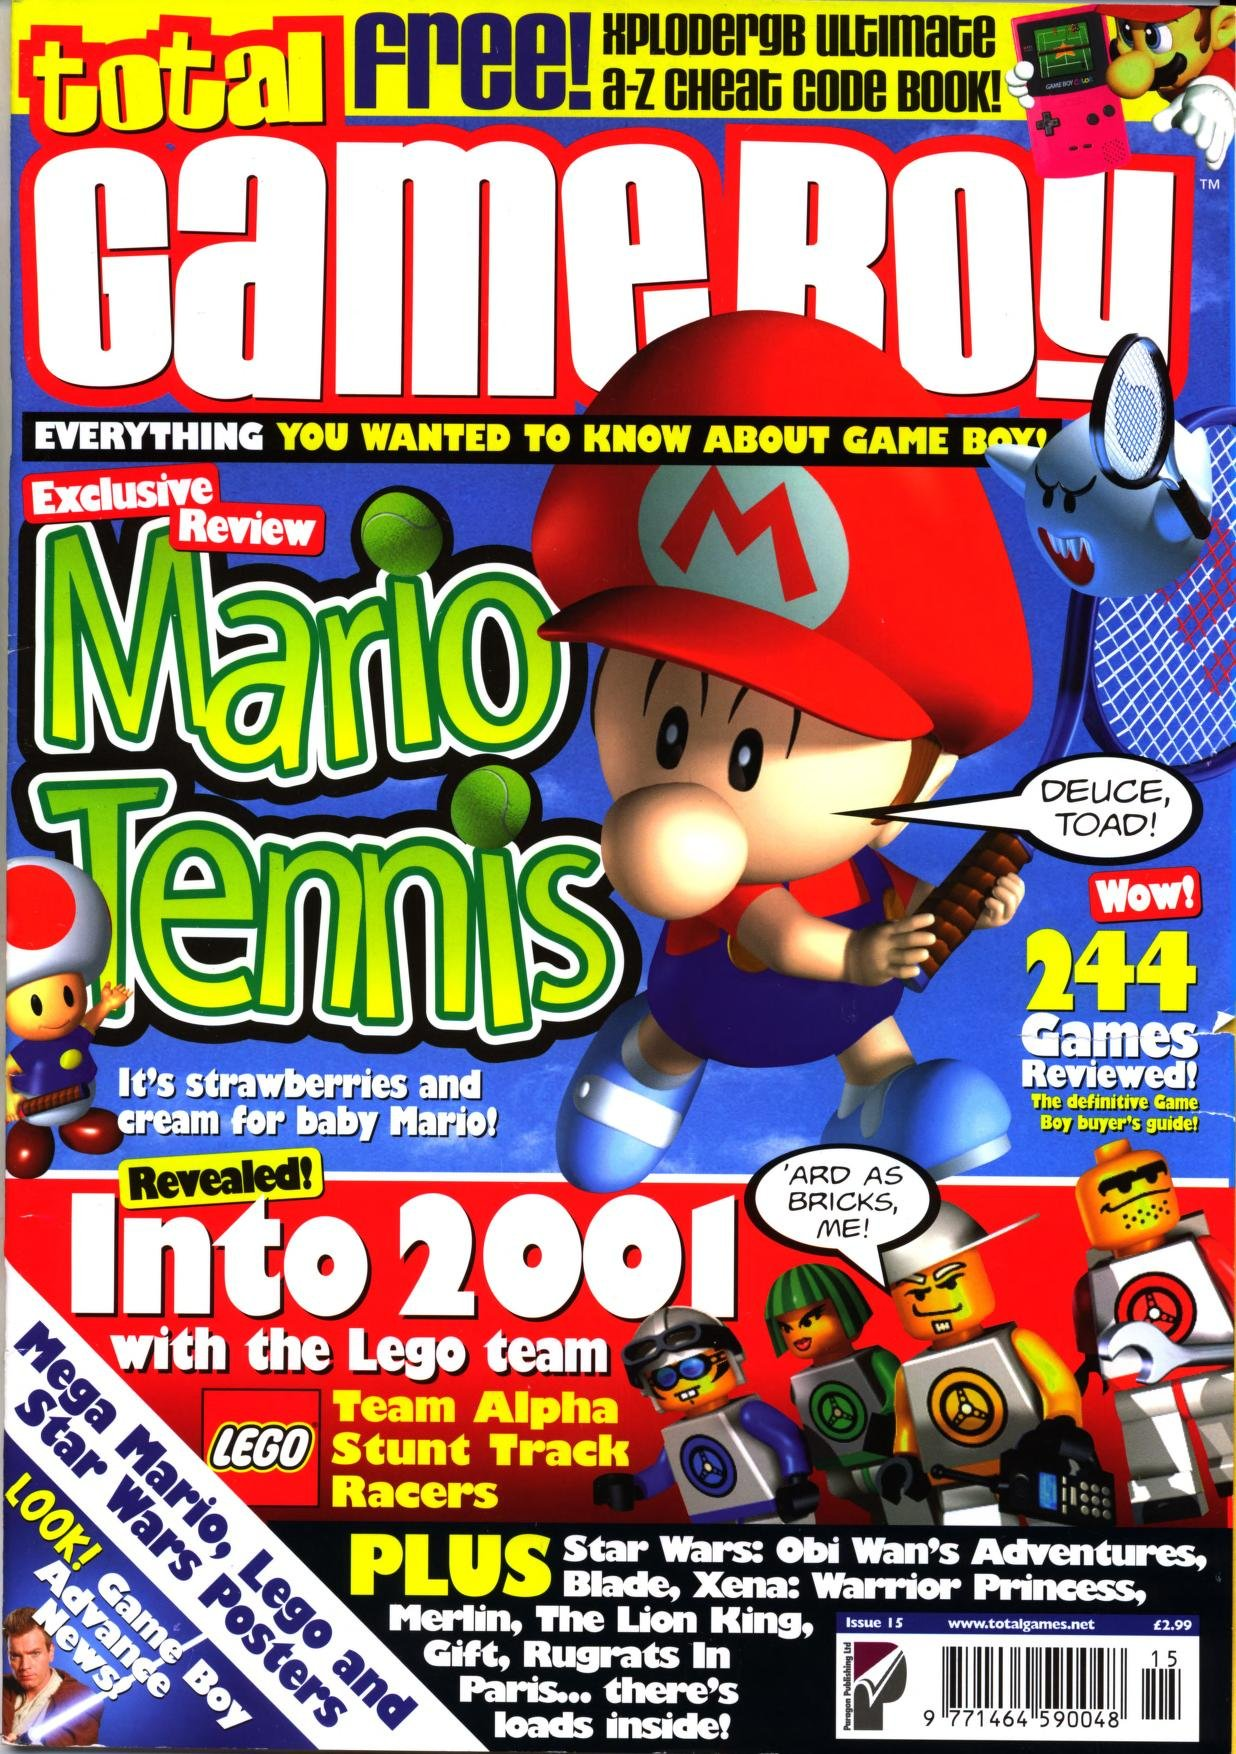 Total Game Boy Issue 15 (March 2001)